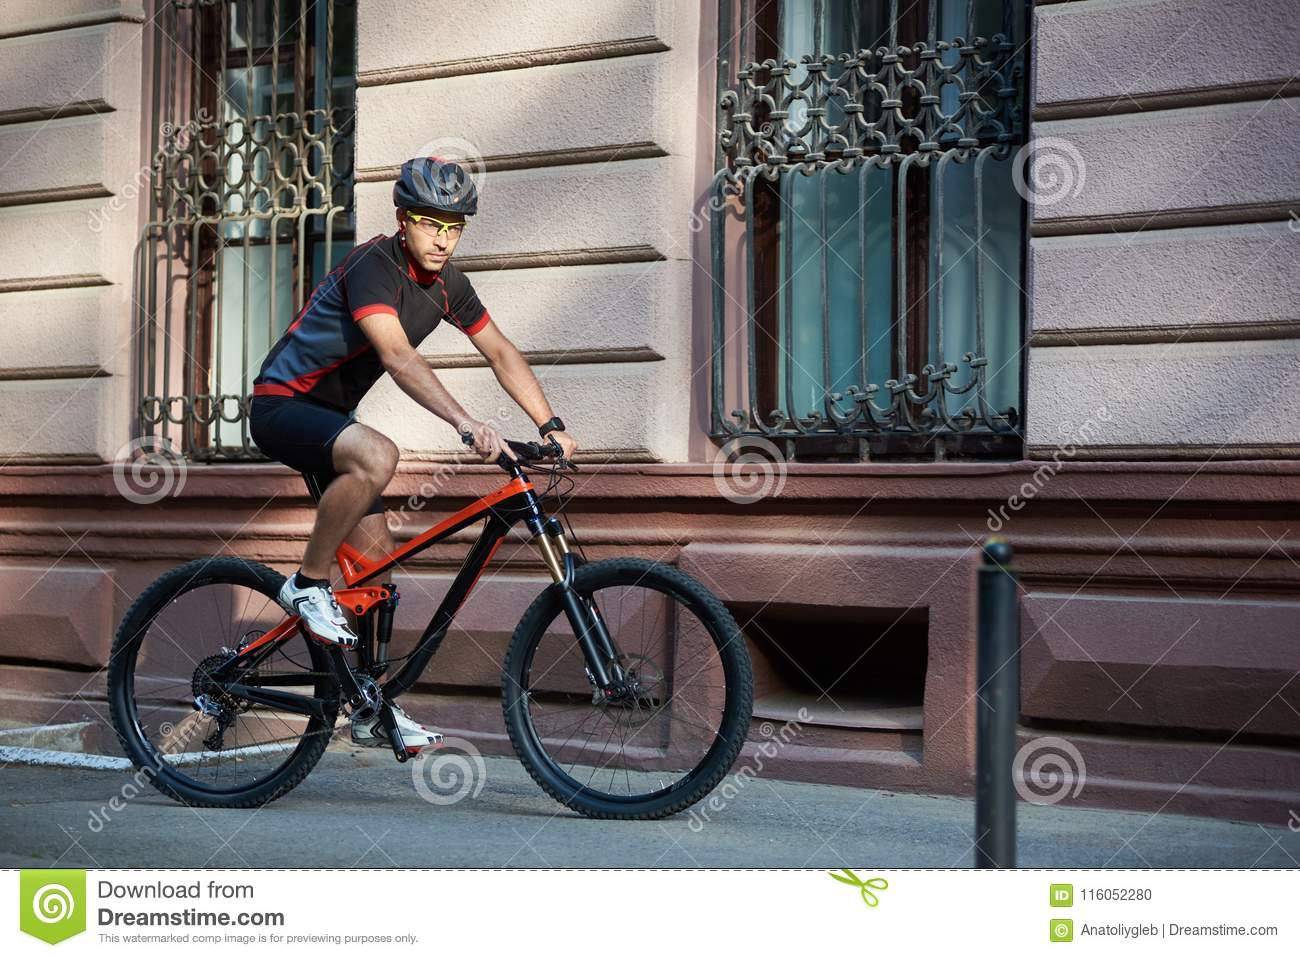 cyclist-riding-bike-along-old-historical-street-sporty-guy-biker- professional-cycling-clothes-protective-helmet-bicycle-116052280.jpg 4e9abb5e2